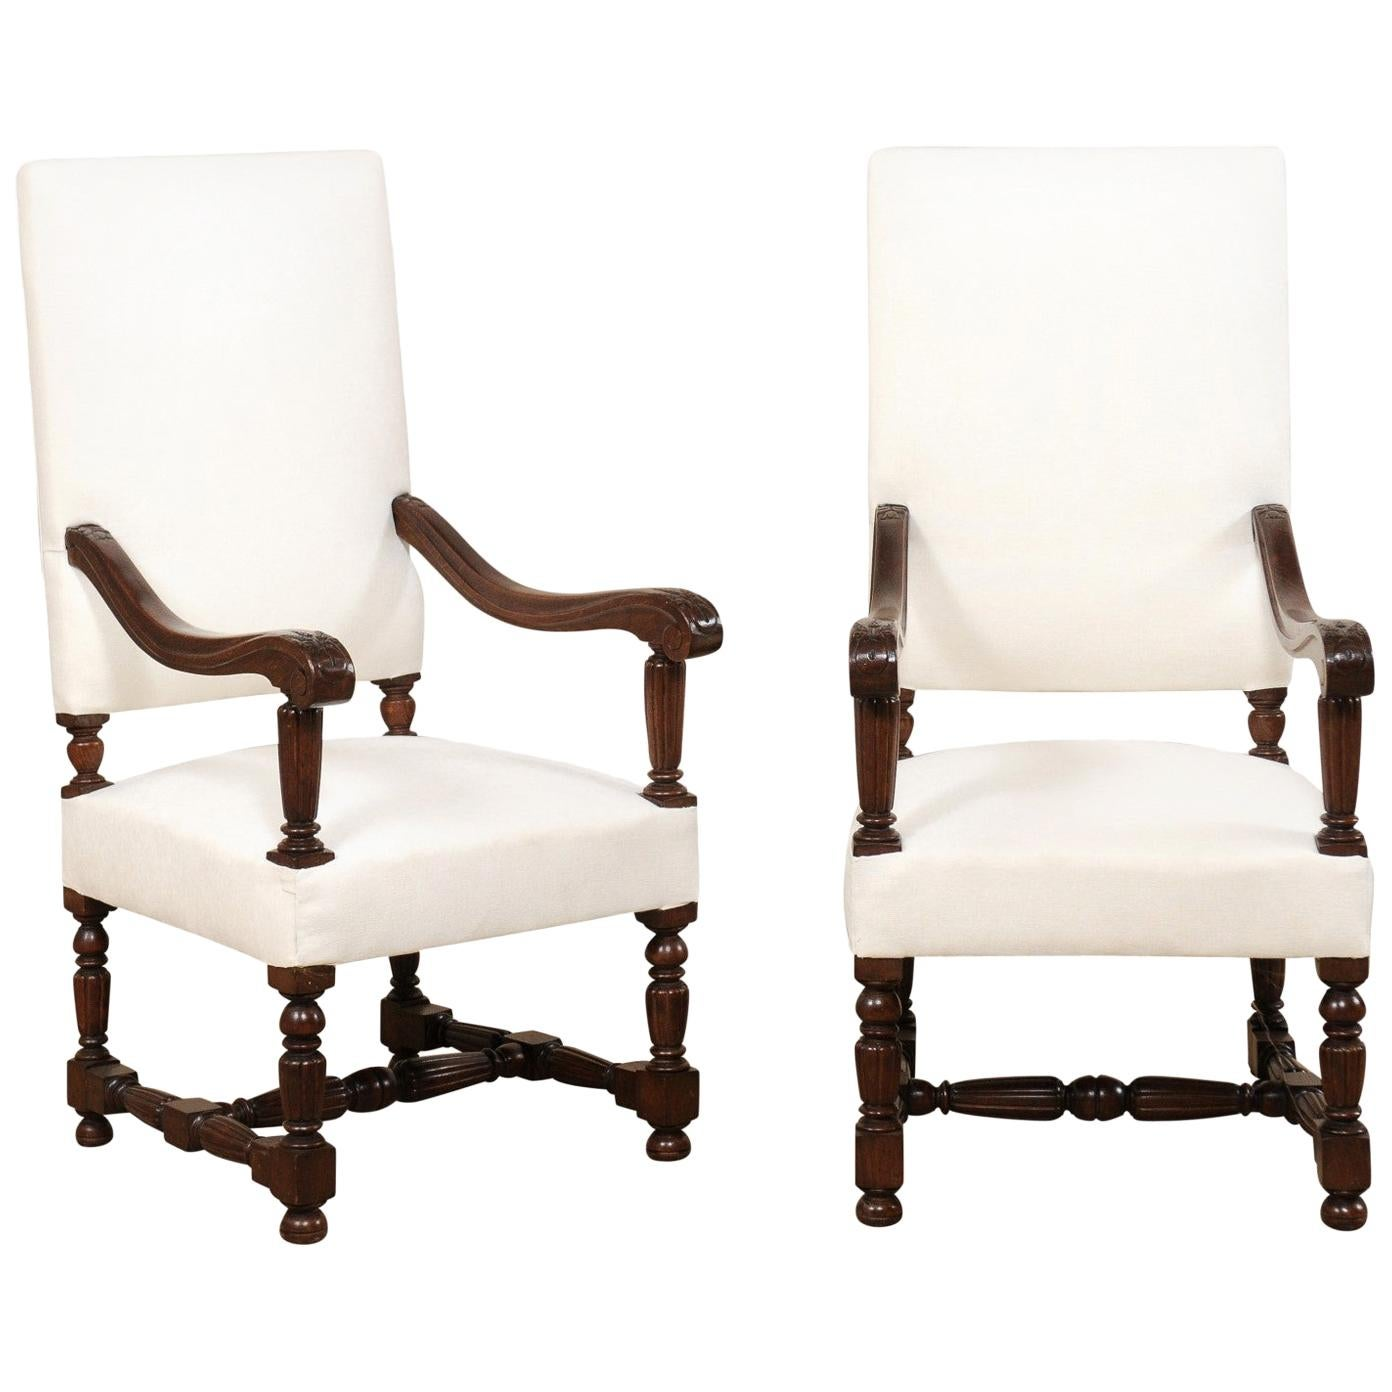 Pair of Italian Carved-Wood Armchairs with Newly Upholstered Seat and Back